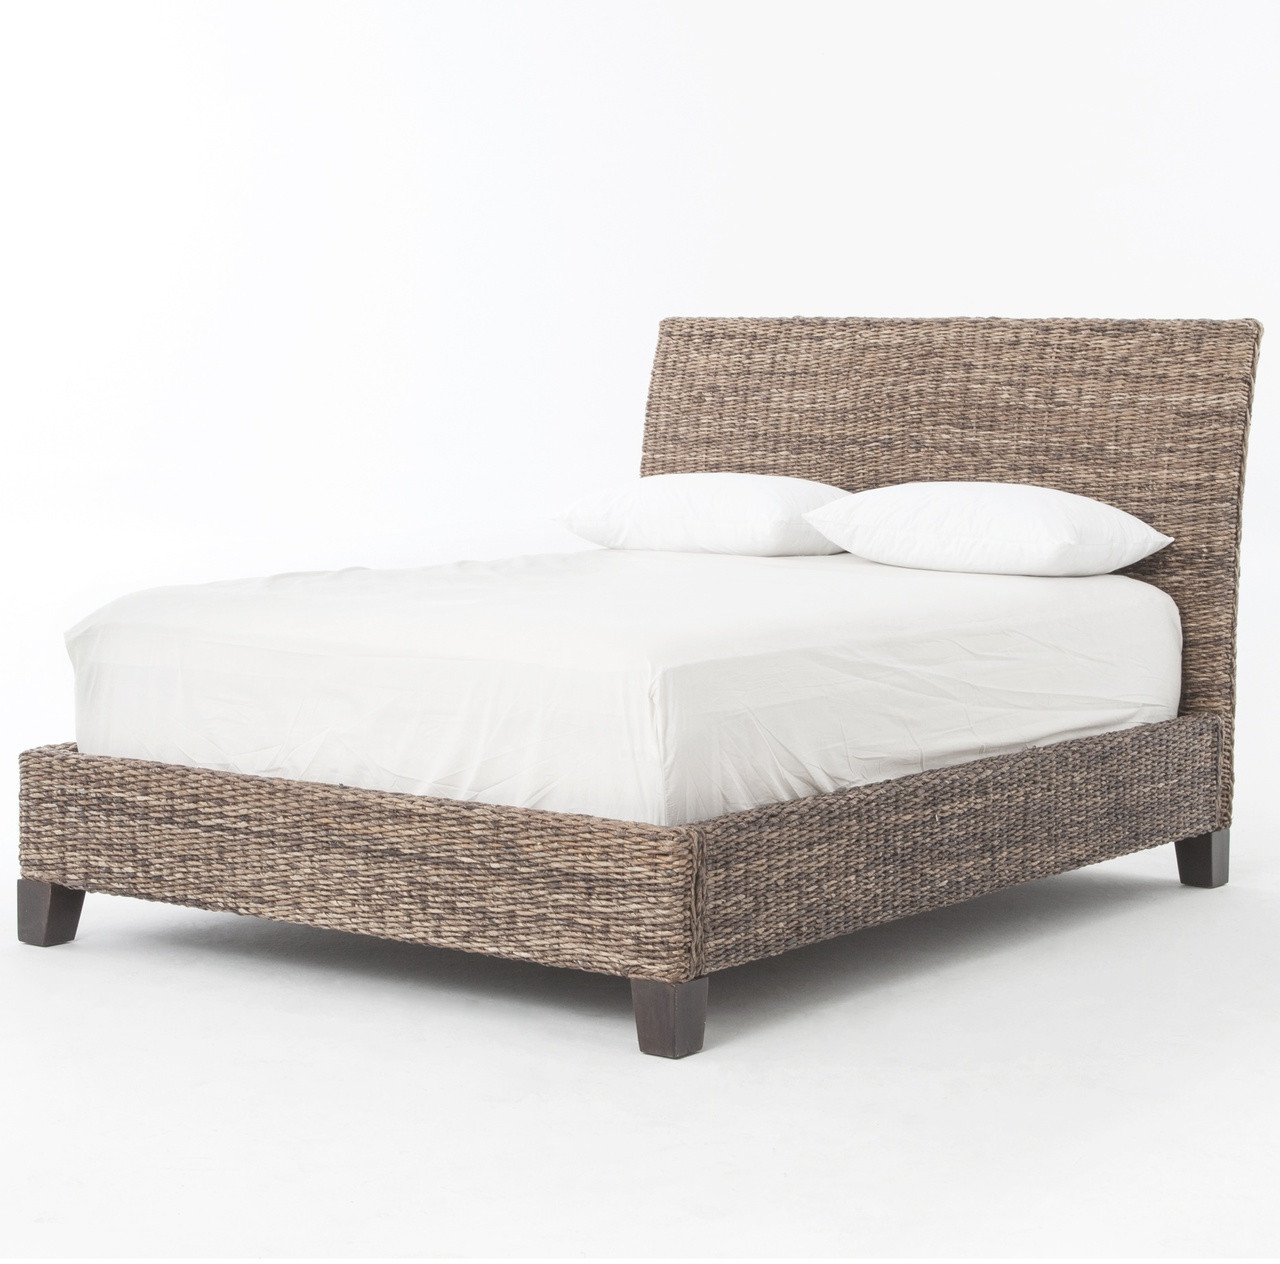 Wicker Bedroom Furniture | Wicker, Rattan & Seagrass Furniture | Zin ...